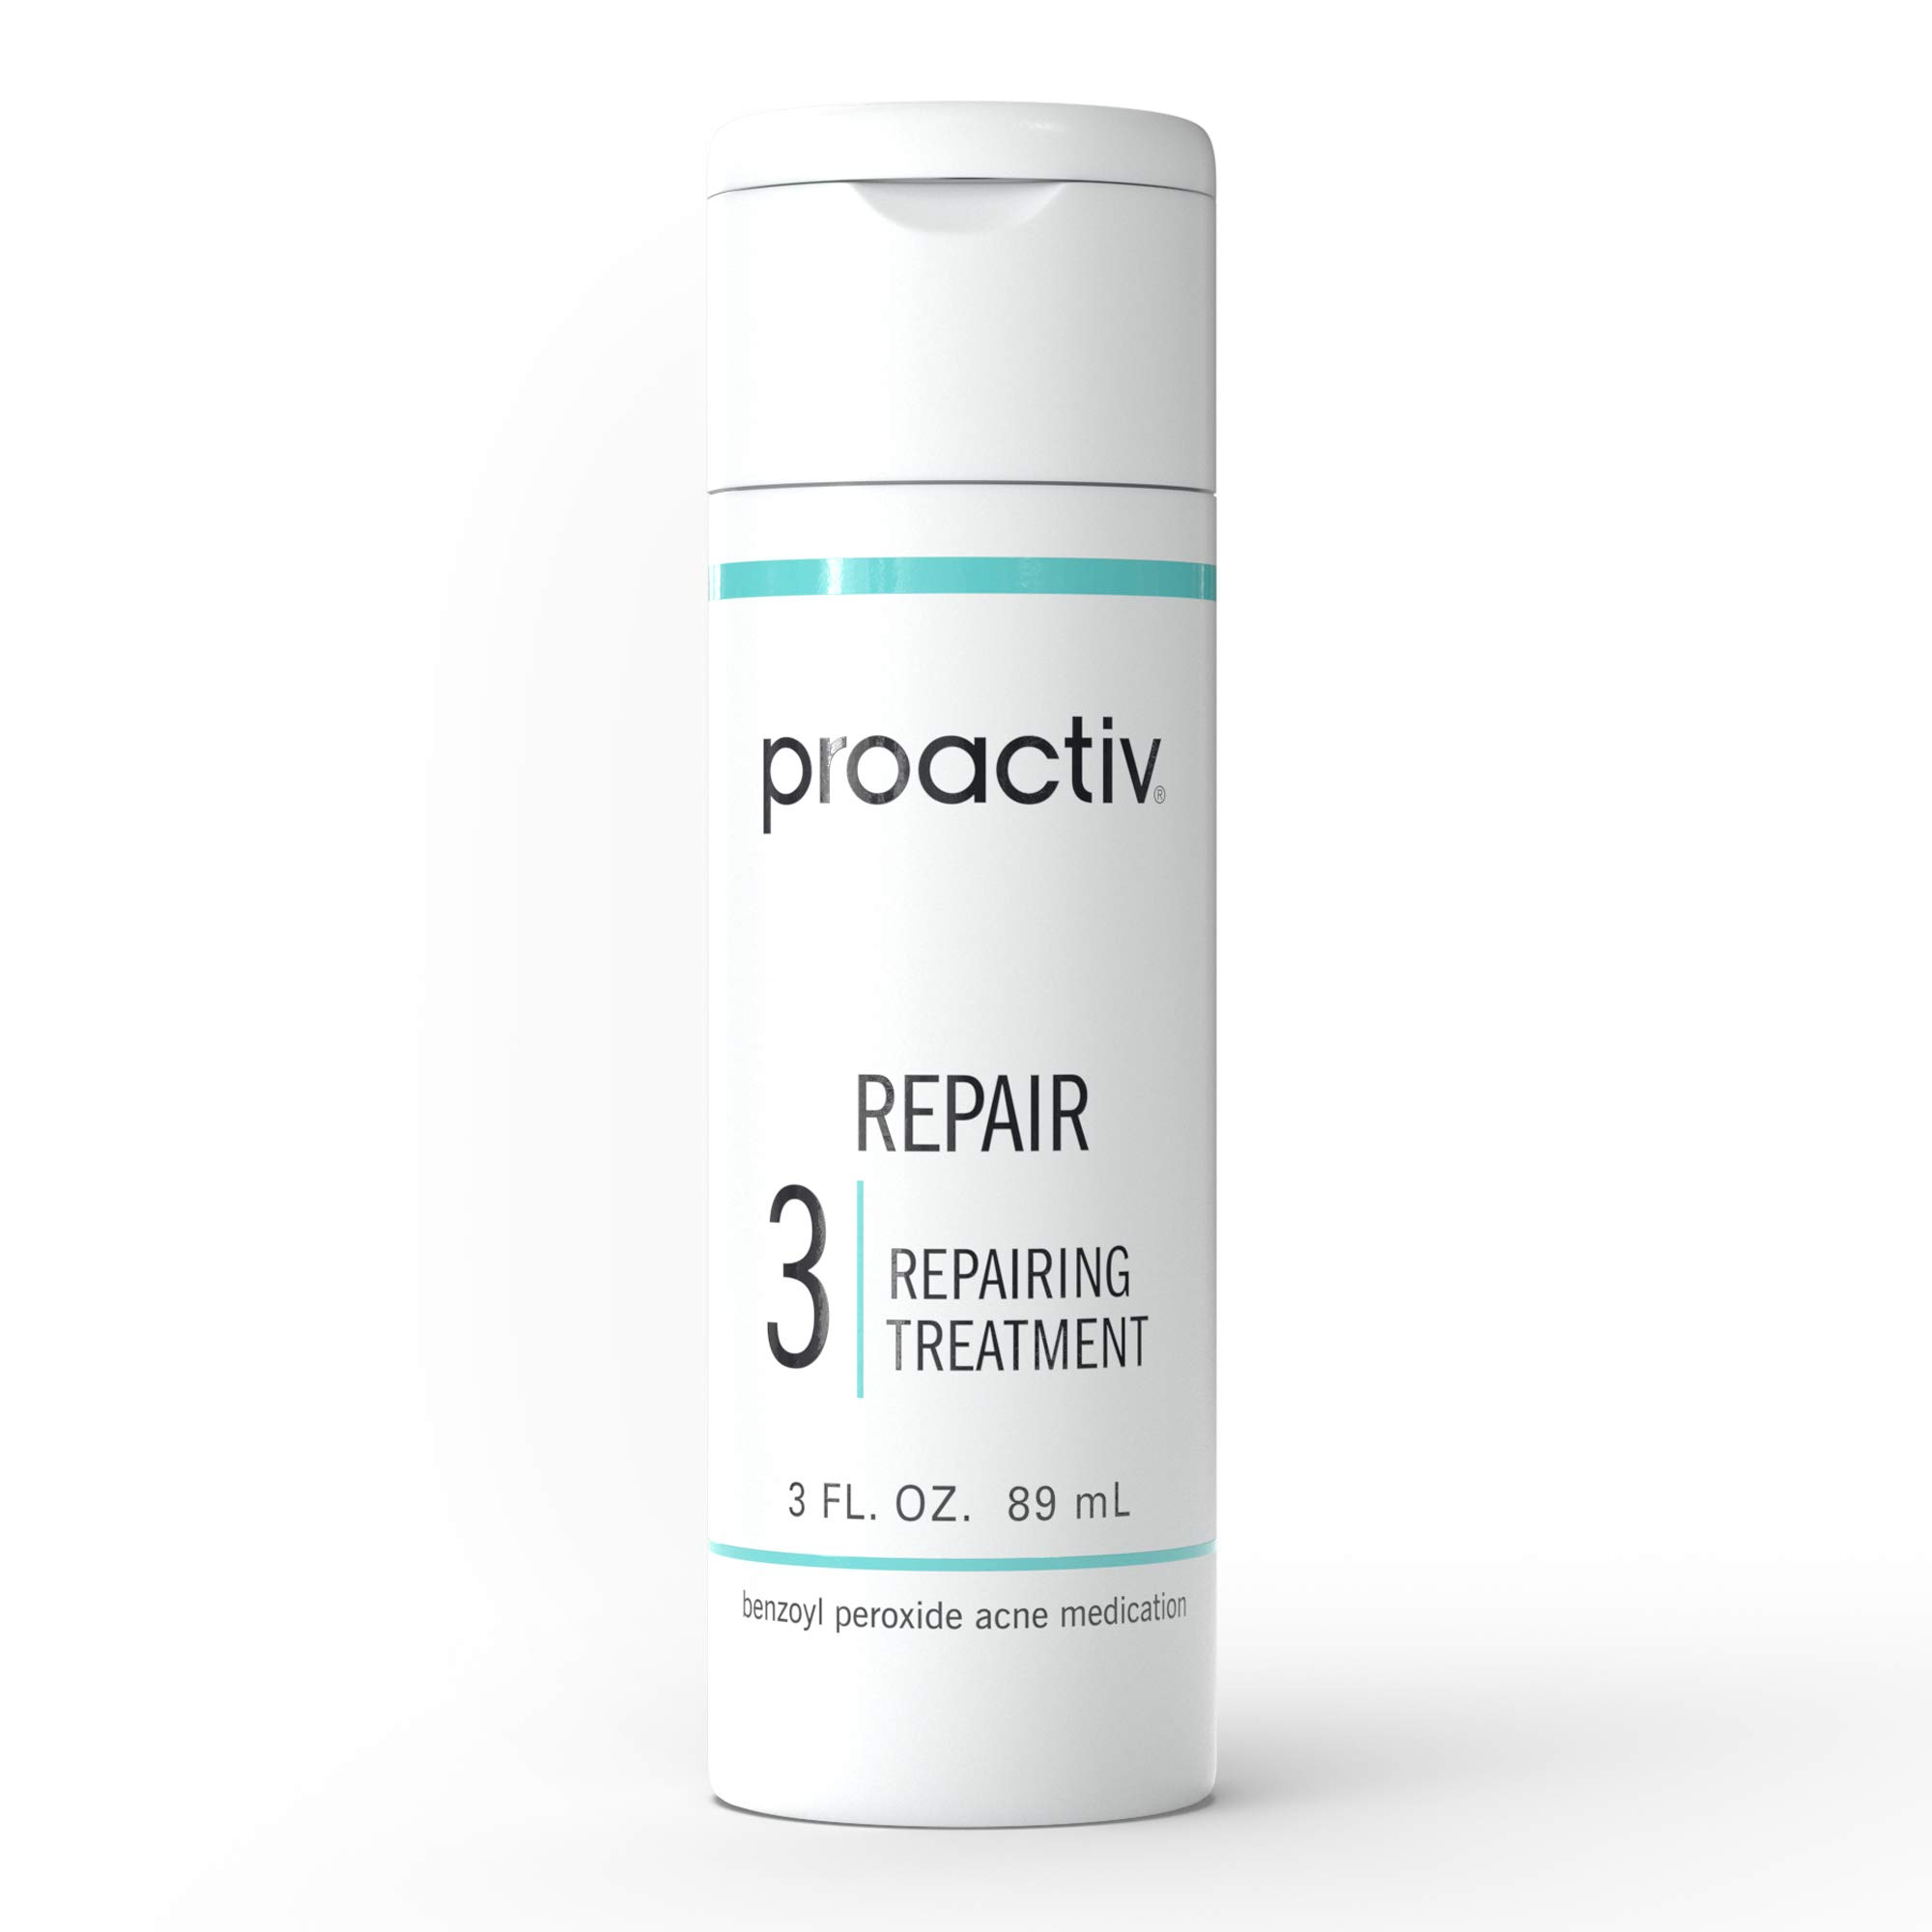 Proactiv Repair Acne Treatment - Benzoyl Peroxide Spot Treatment and Repairing Serum - 90 Day Supply, 3 Oz